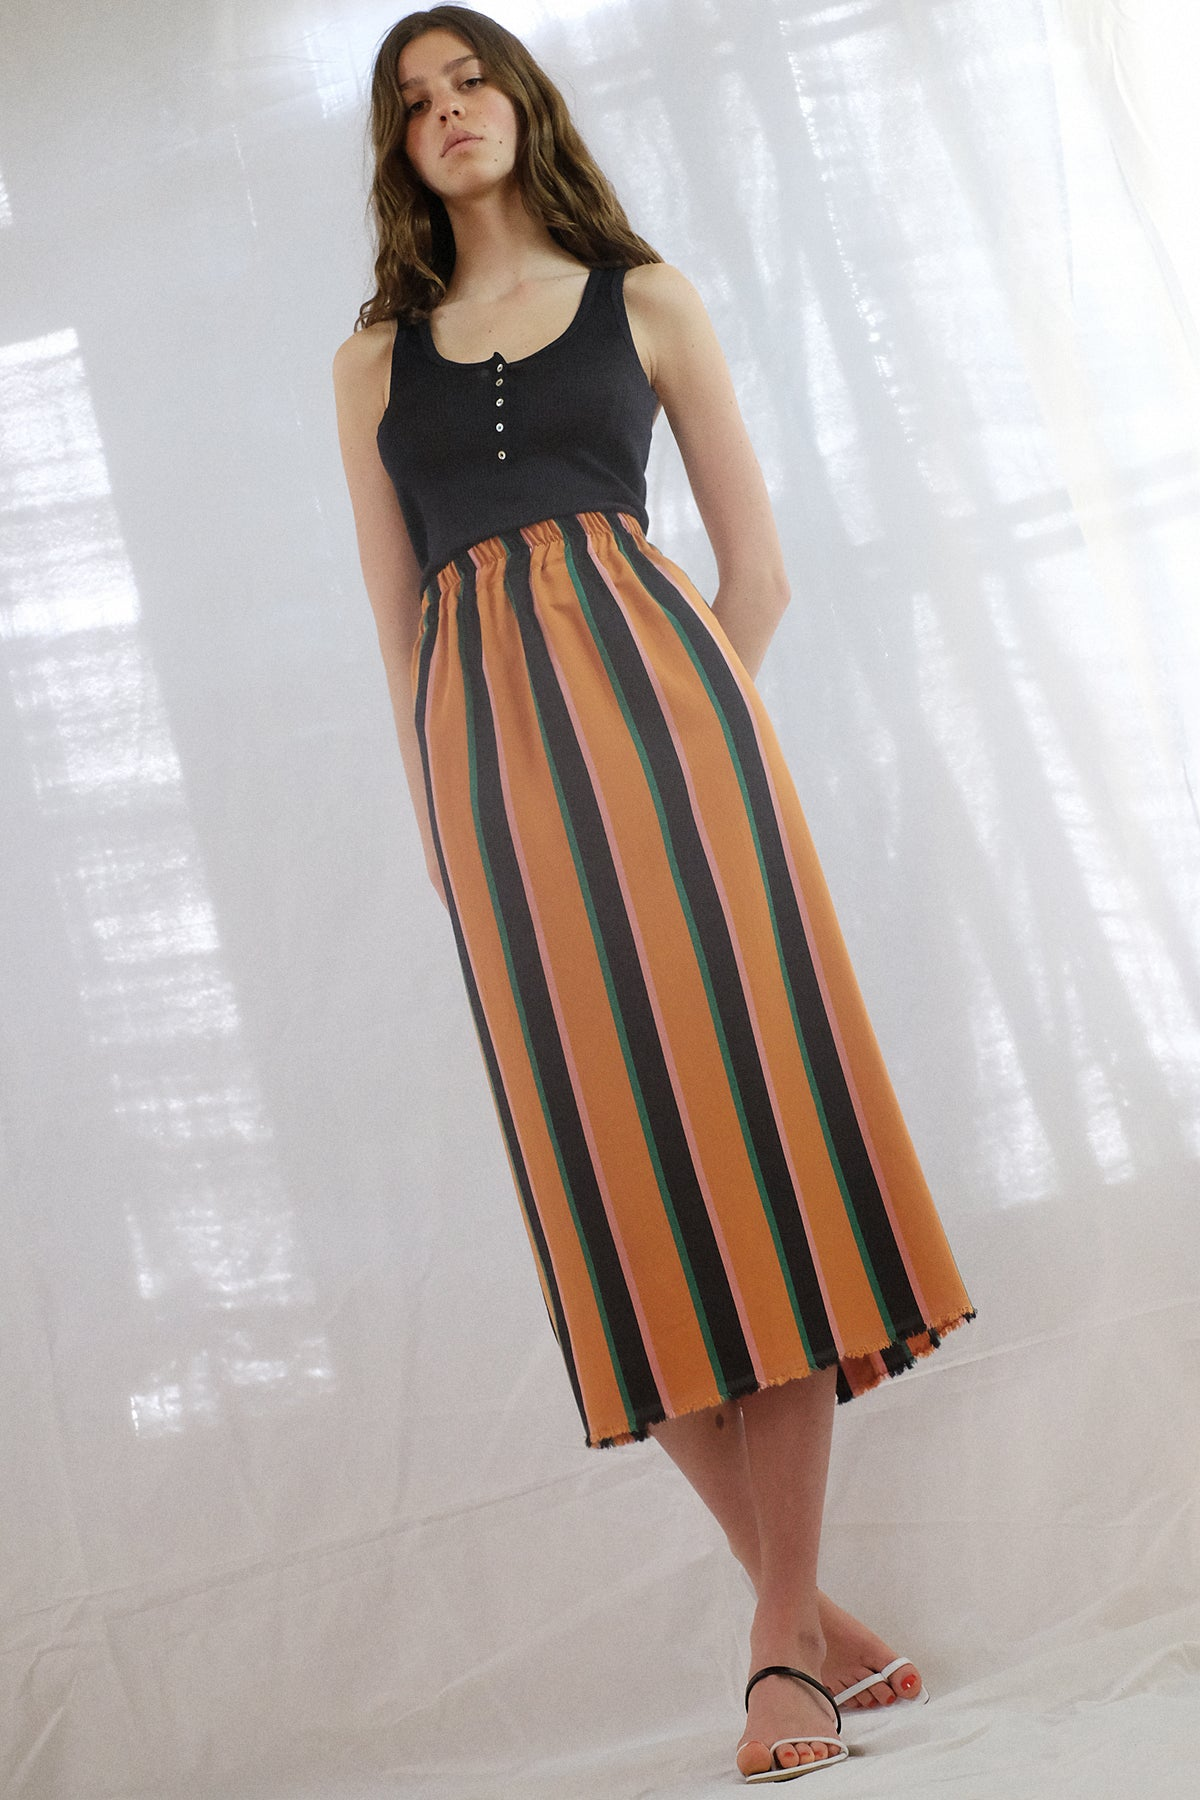 Vladimir Karaleev — Basic Skirt / Orange